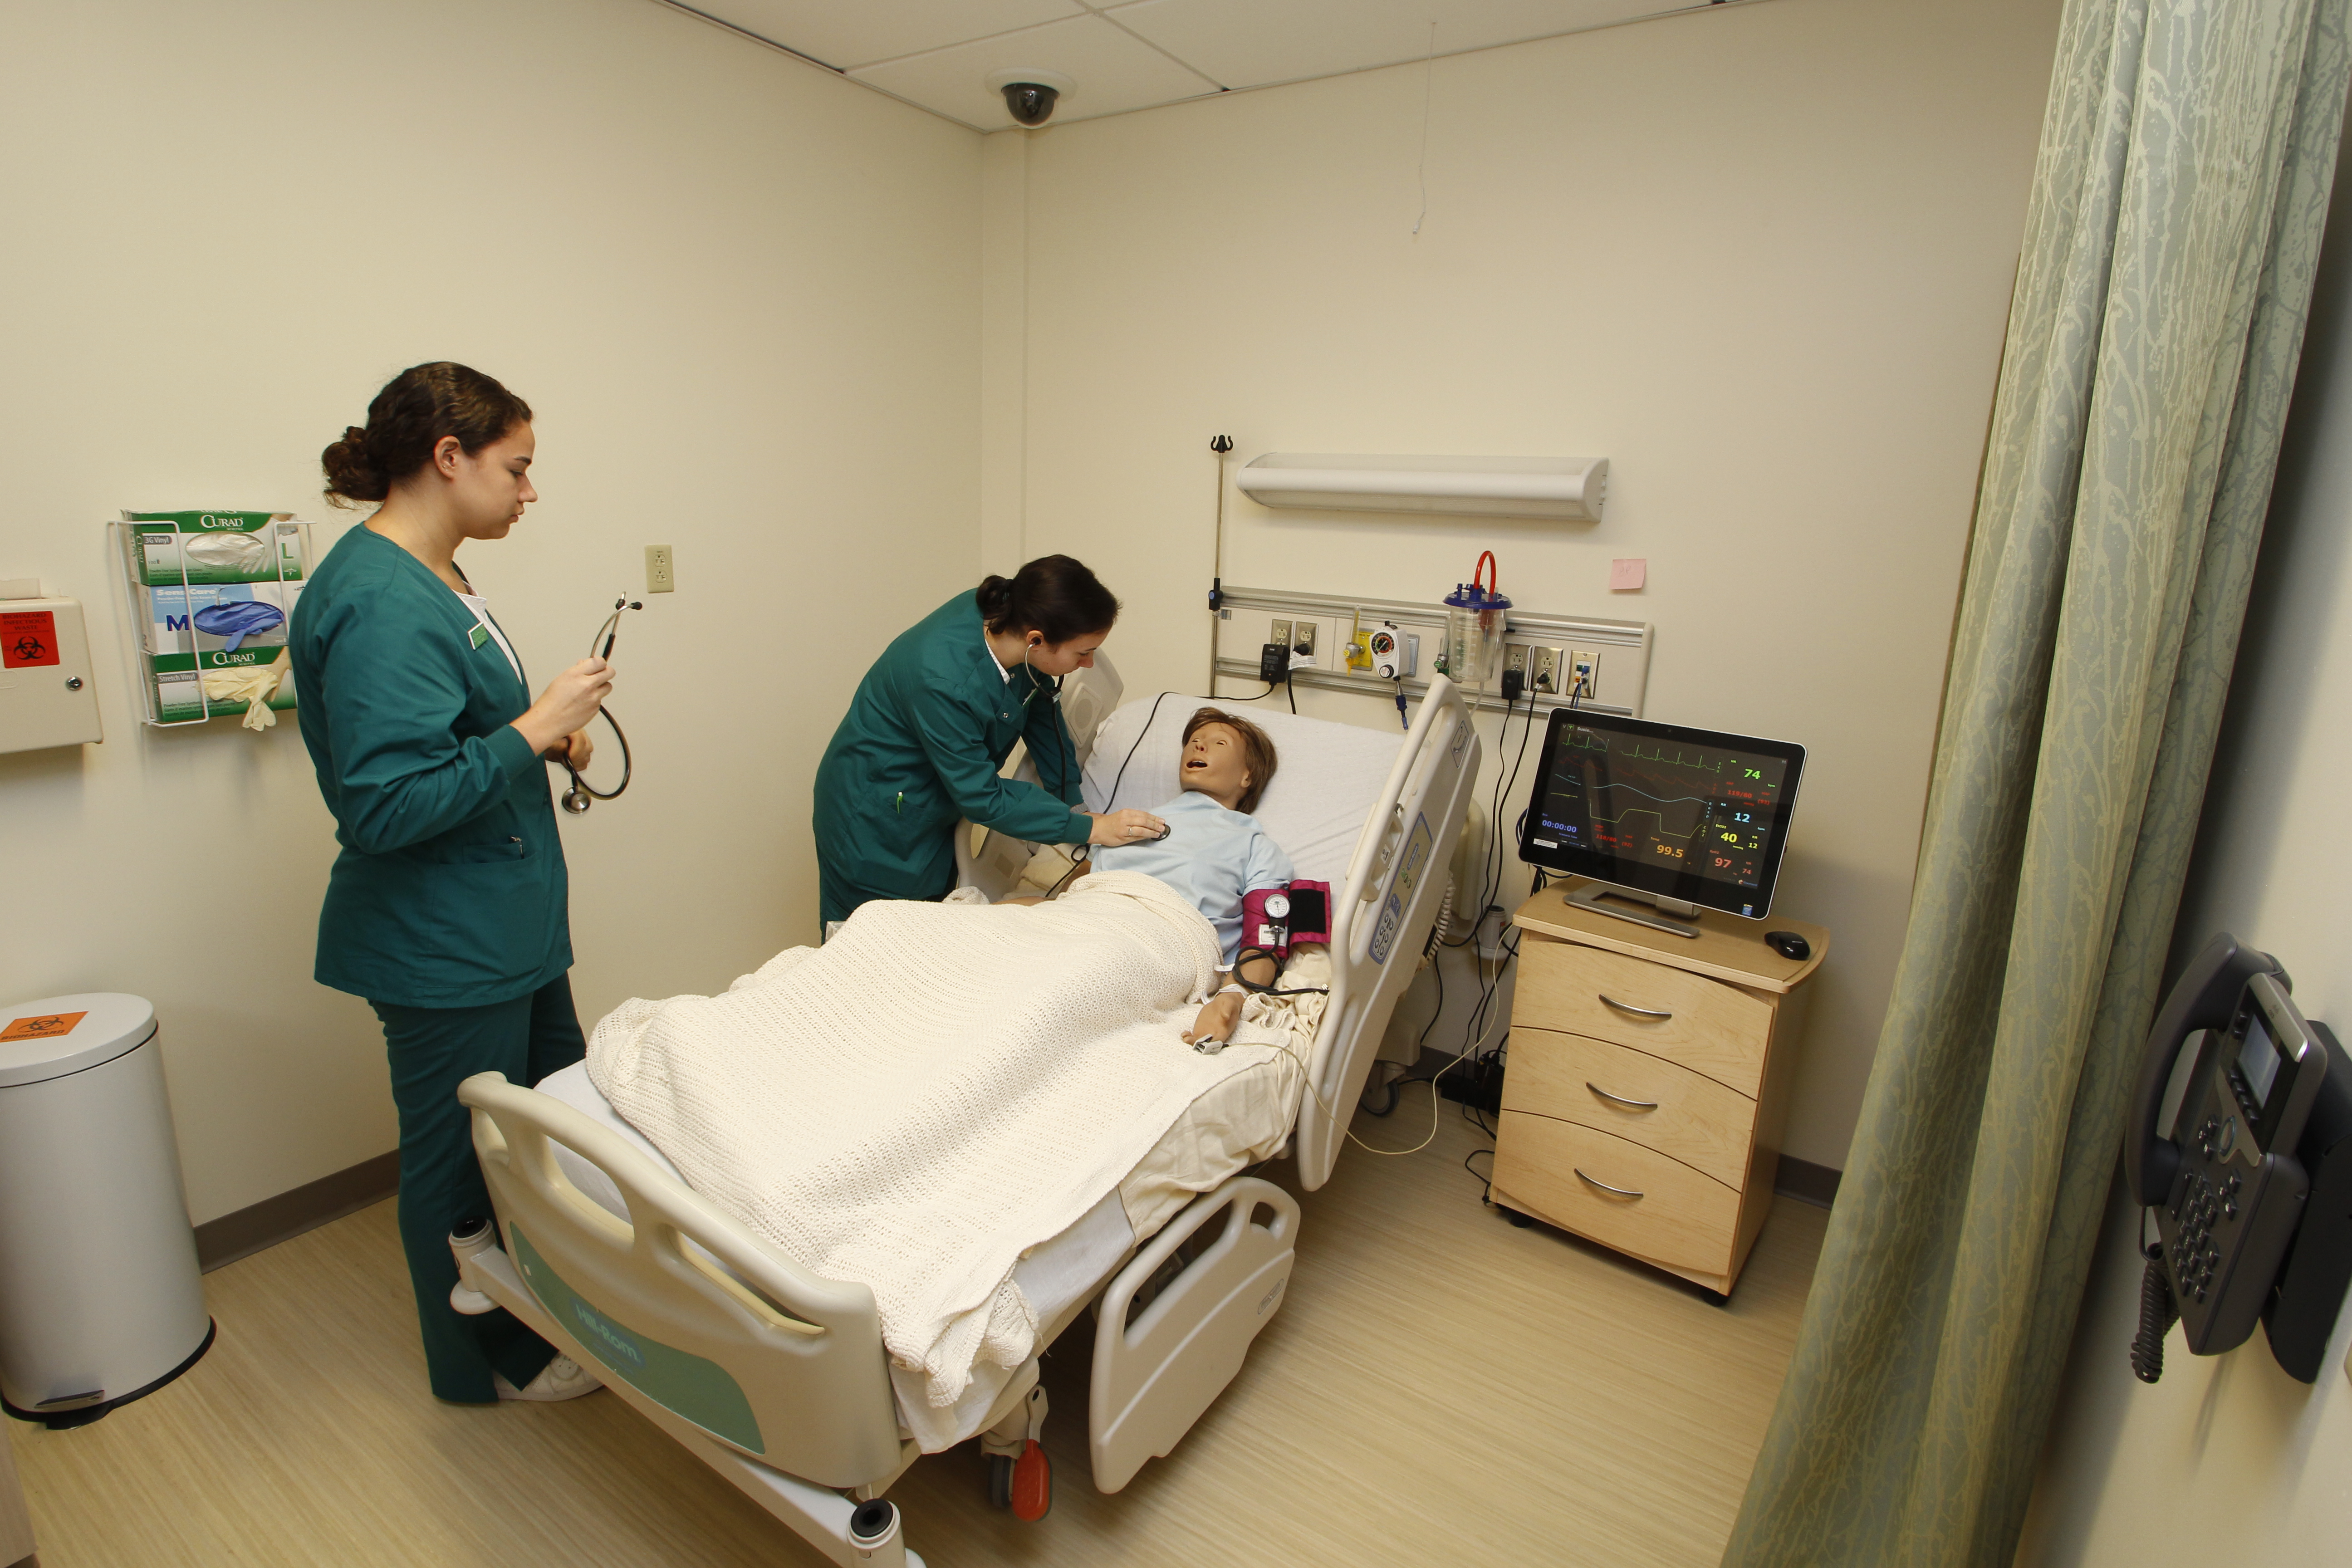 Two medical assistant students practice on a patient simulation